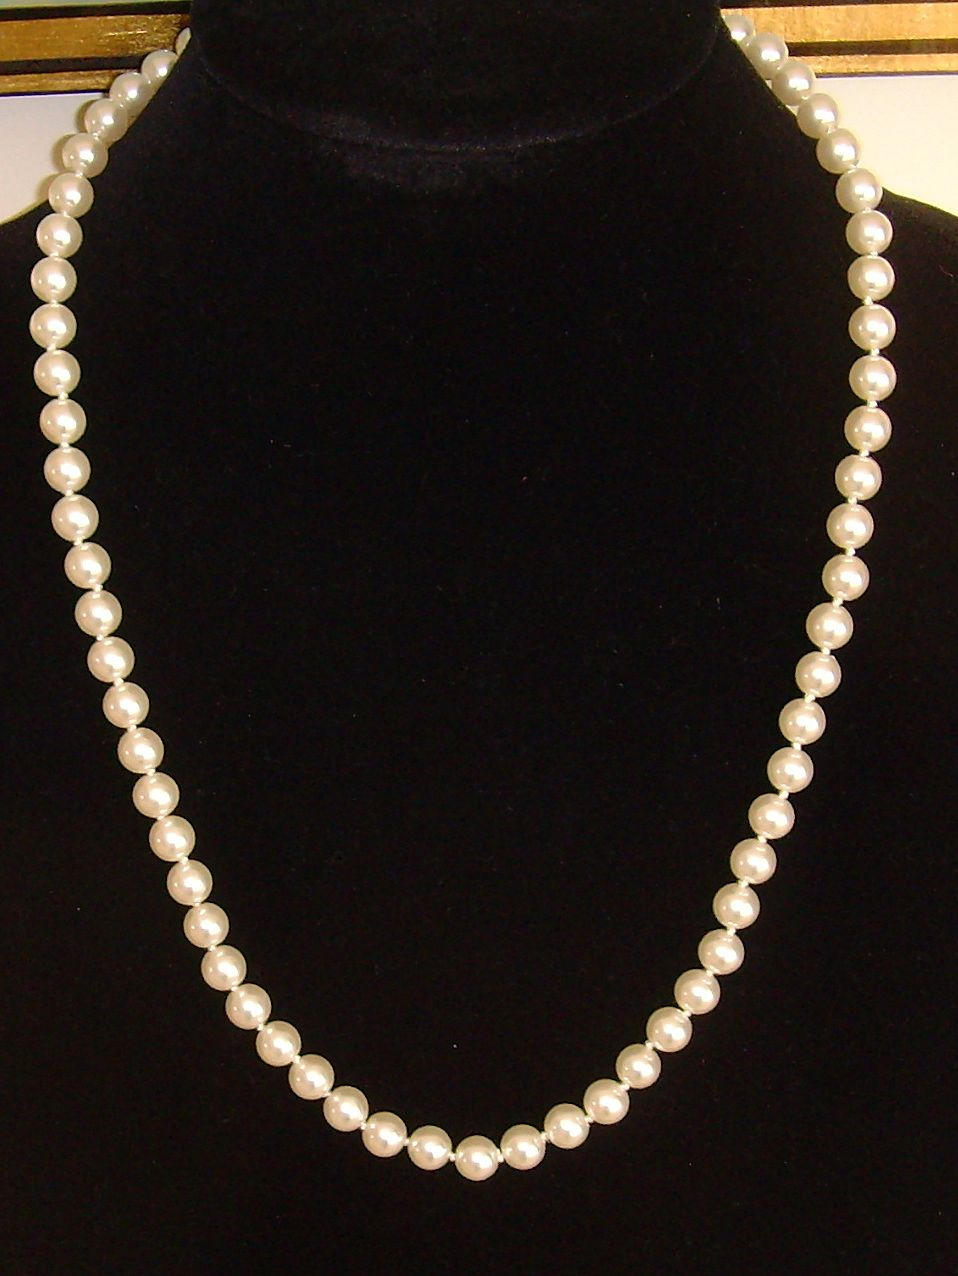 Simulated Single Strand Pearls